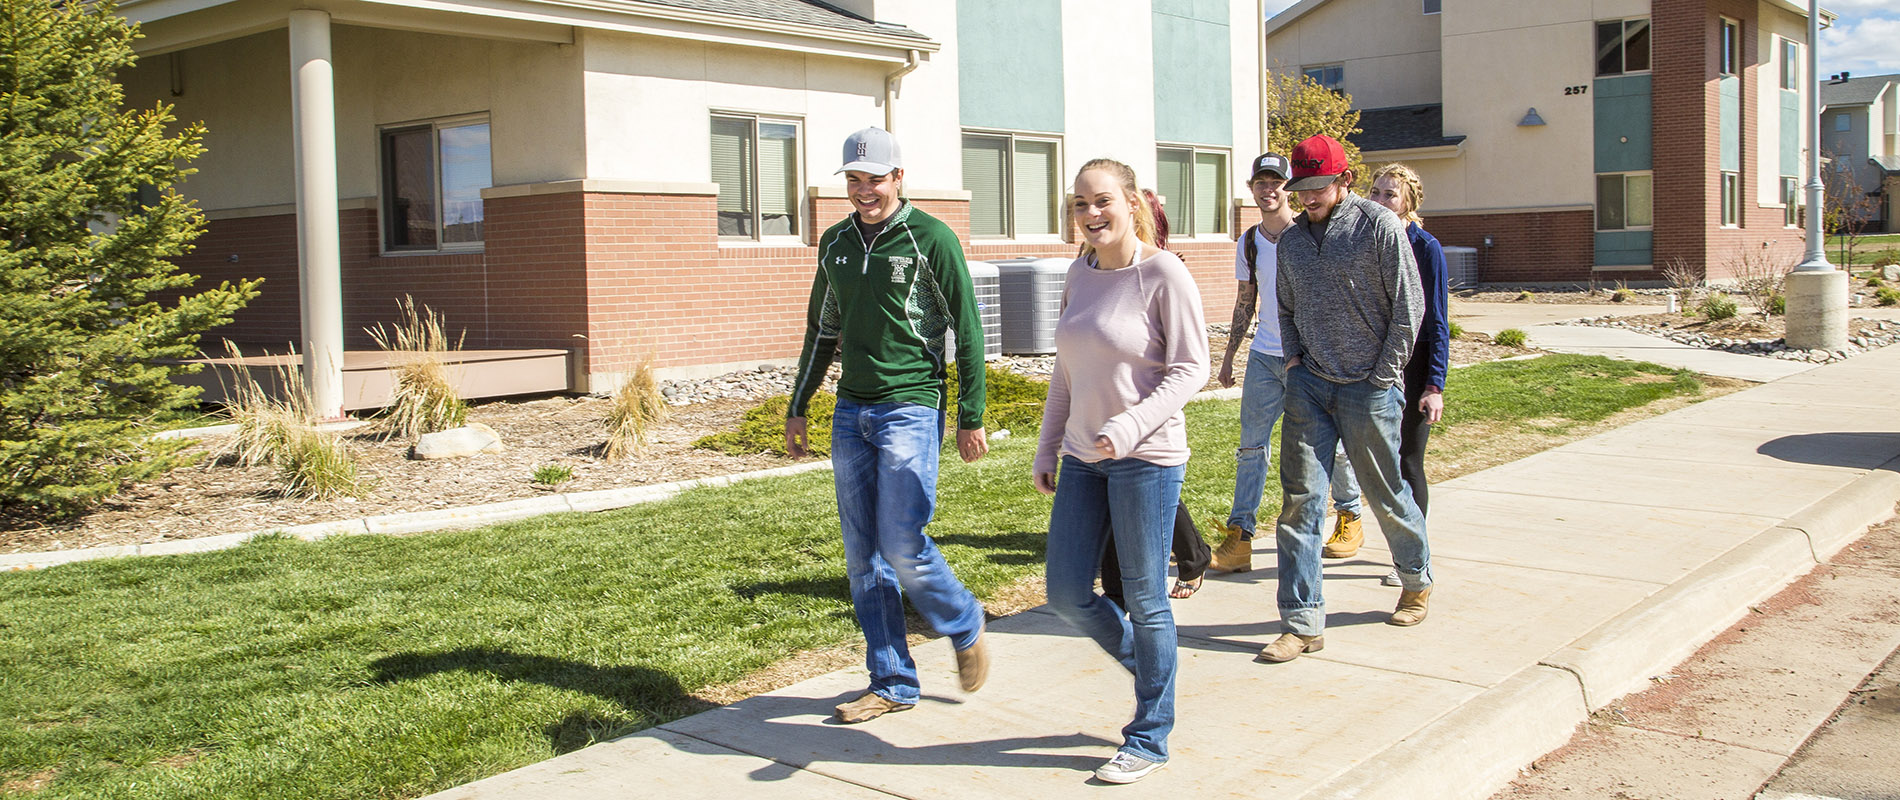 Register to attend Pronghorn Preview at Gillette College on Nov.  22.